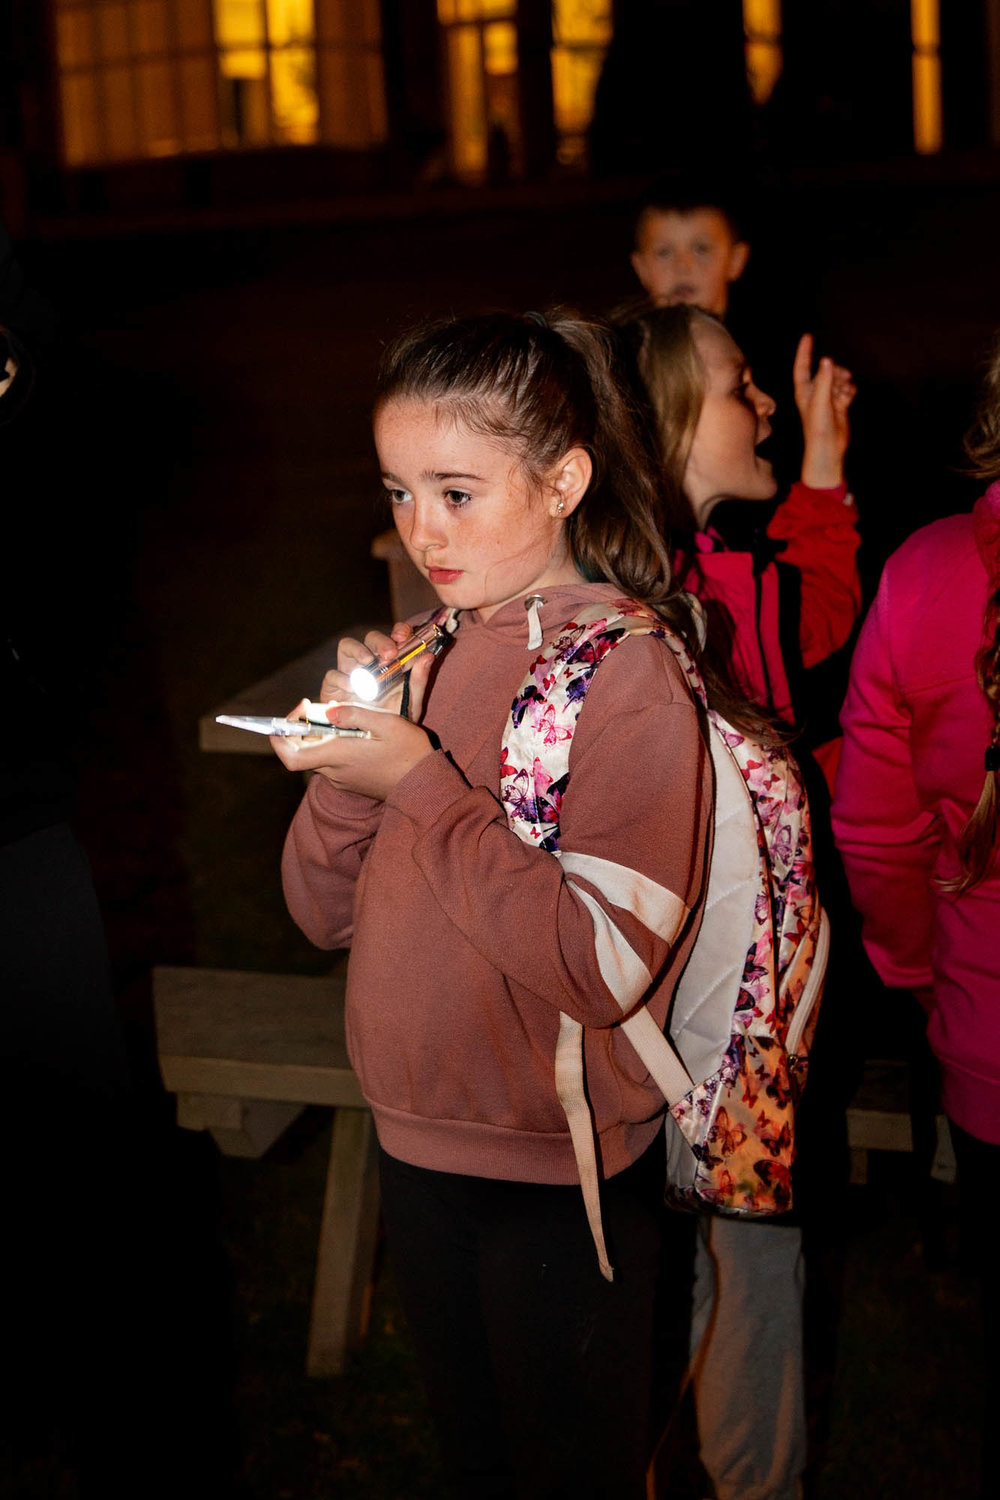 Culmington_Manor_0030.jpg